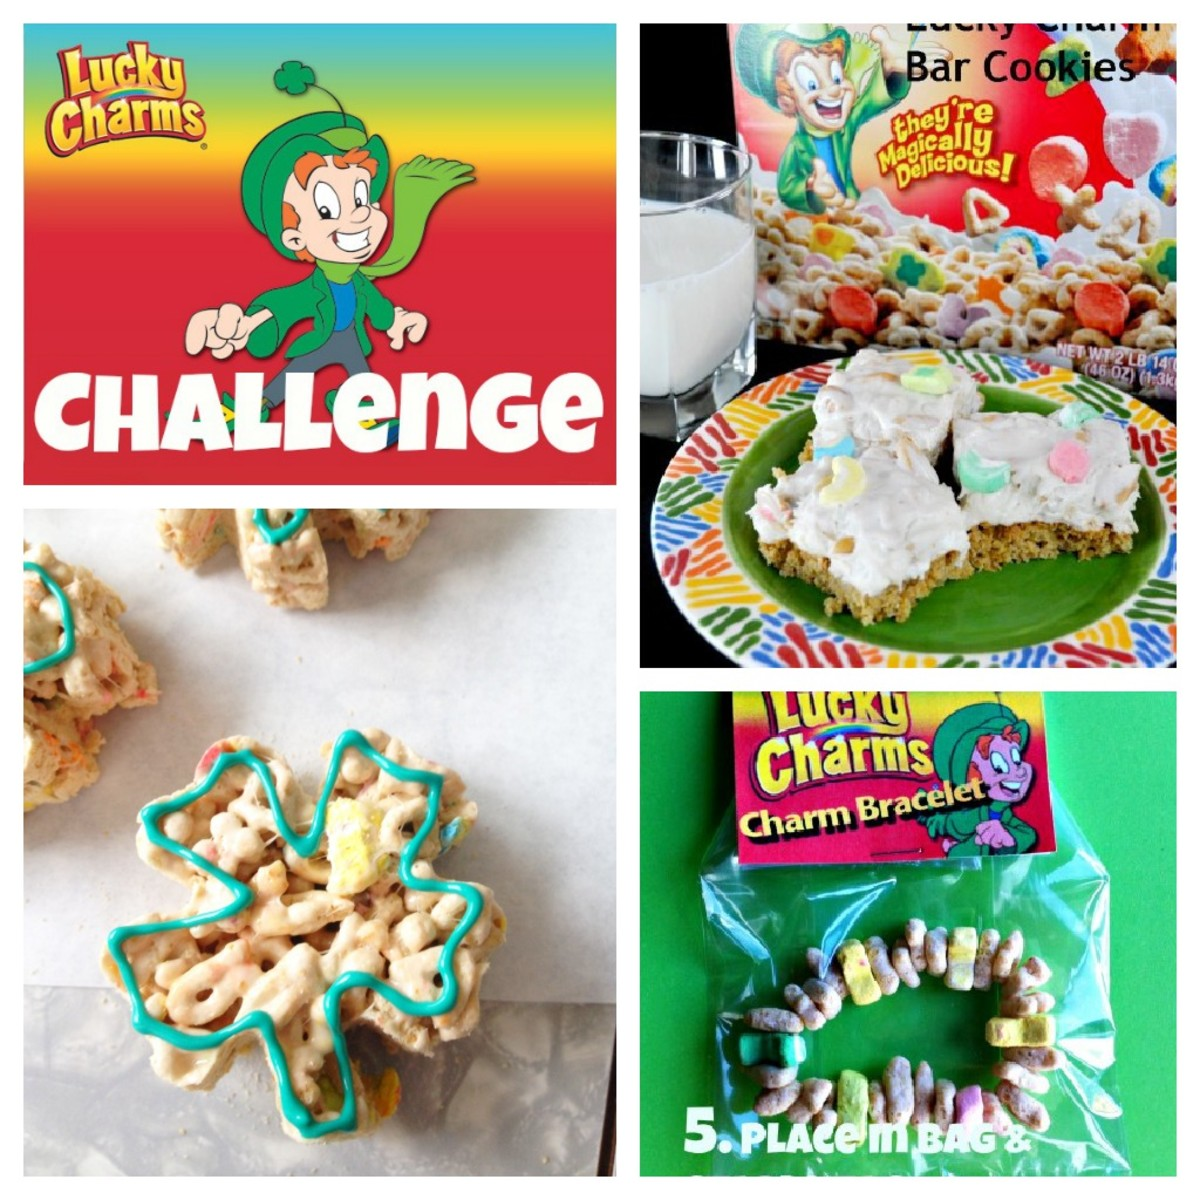 The Lucky Charms Challenge for St. Patrick's Day